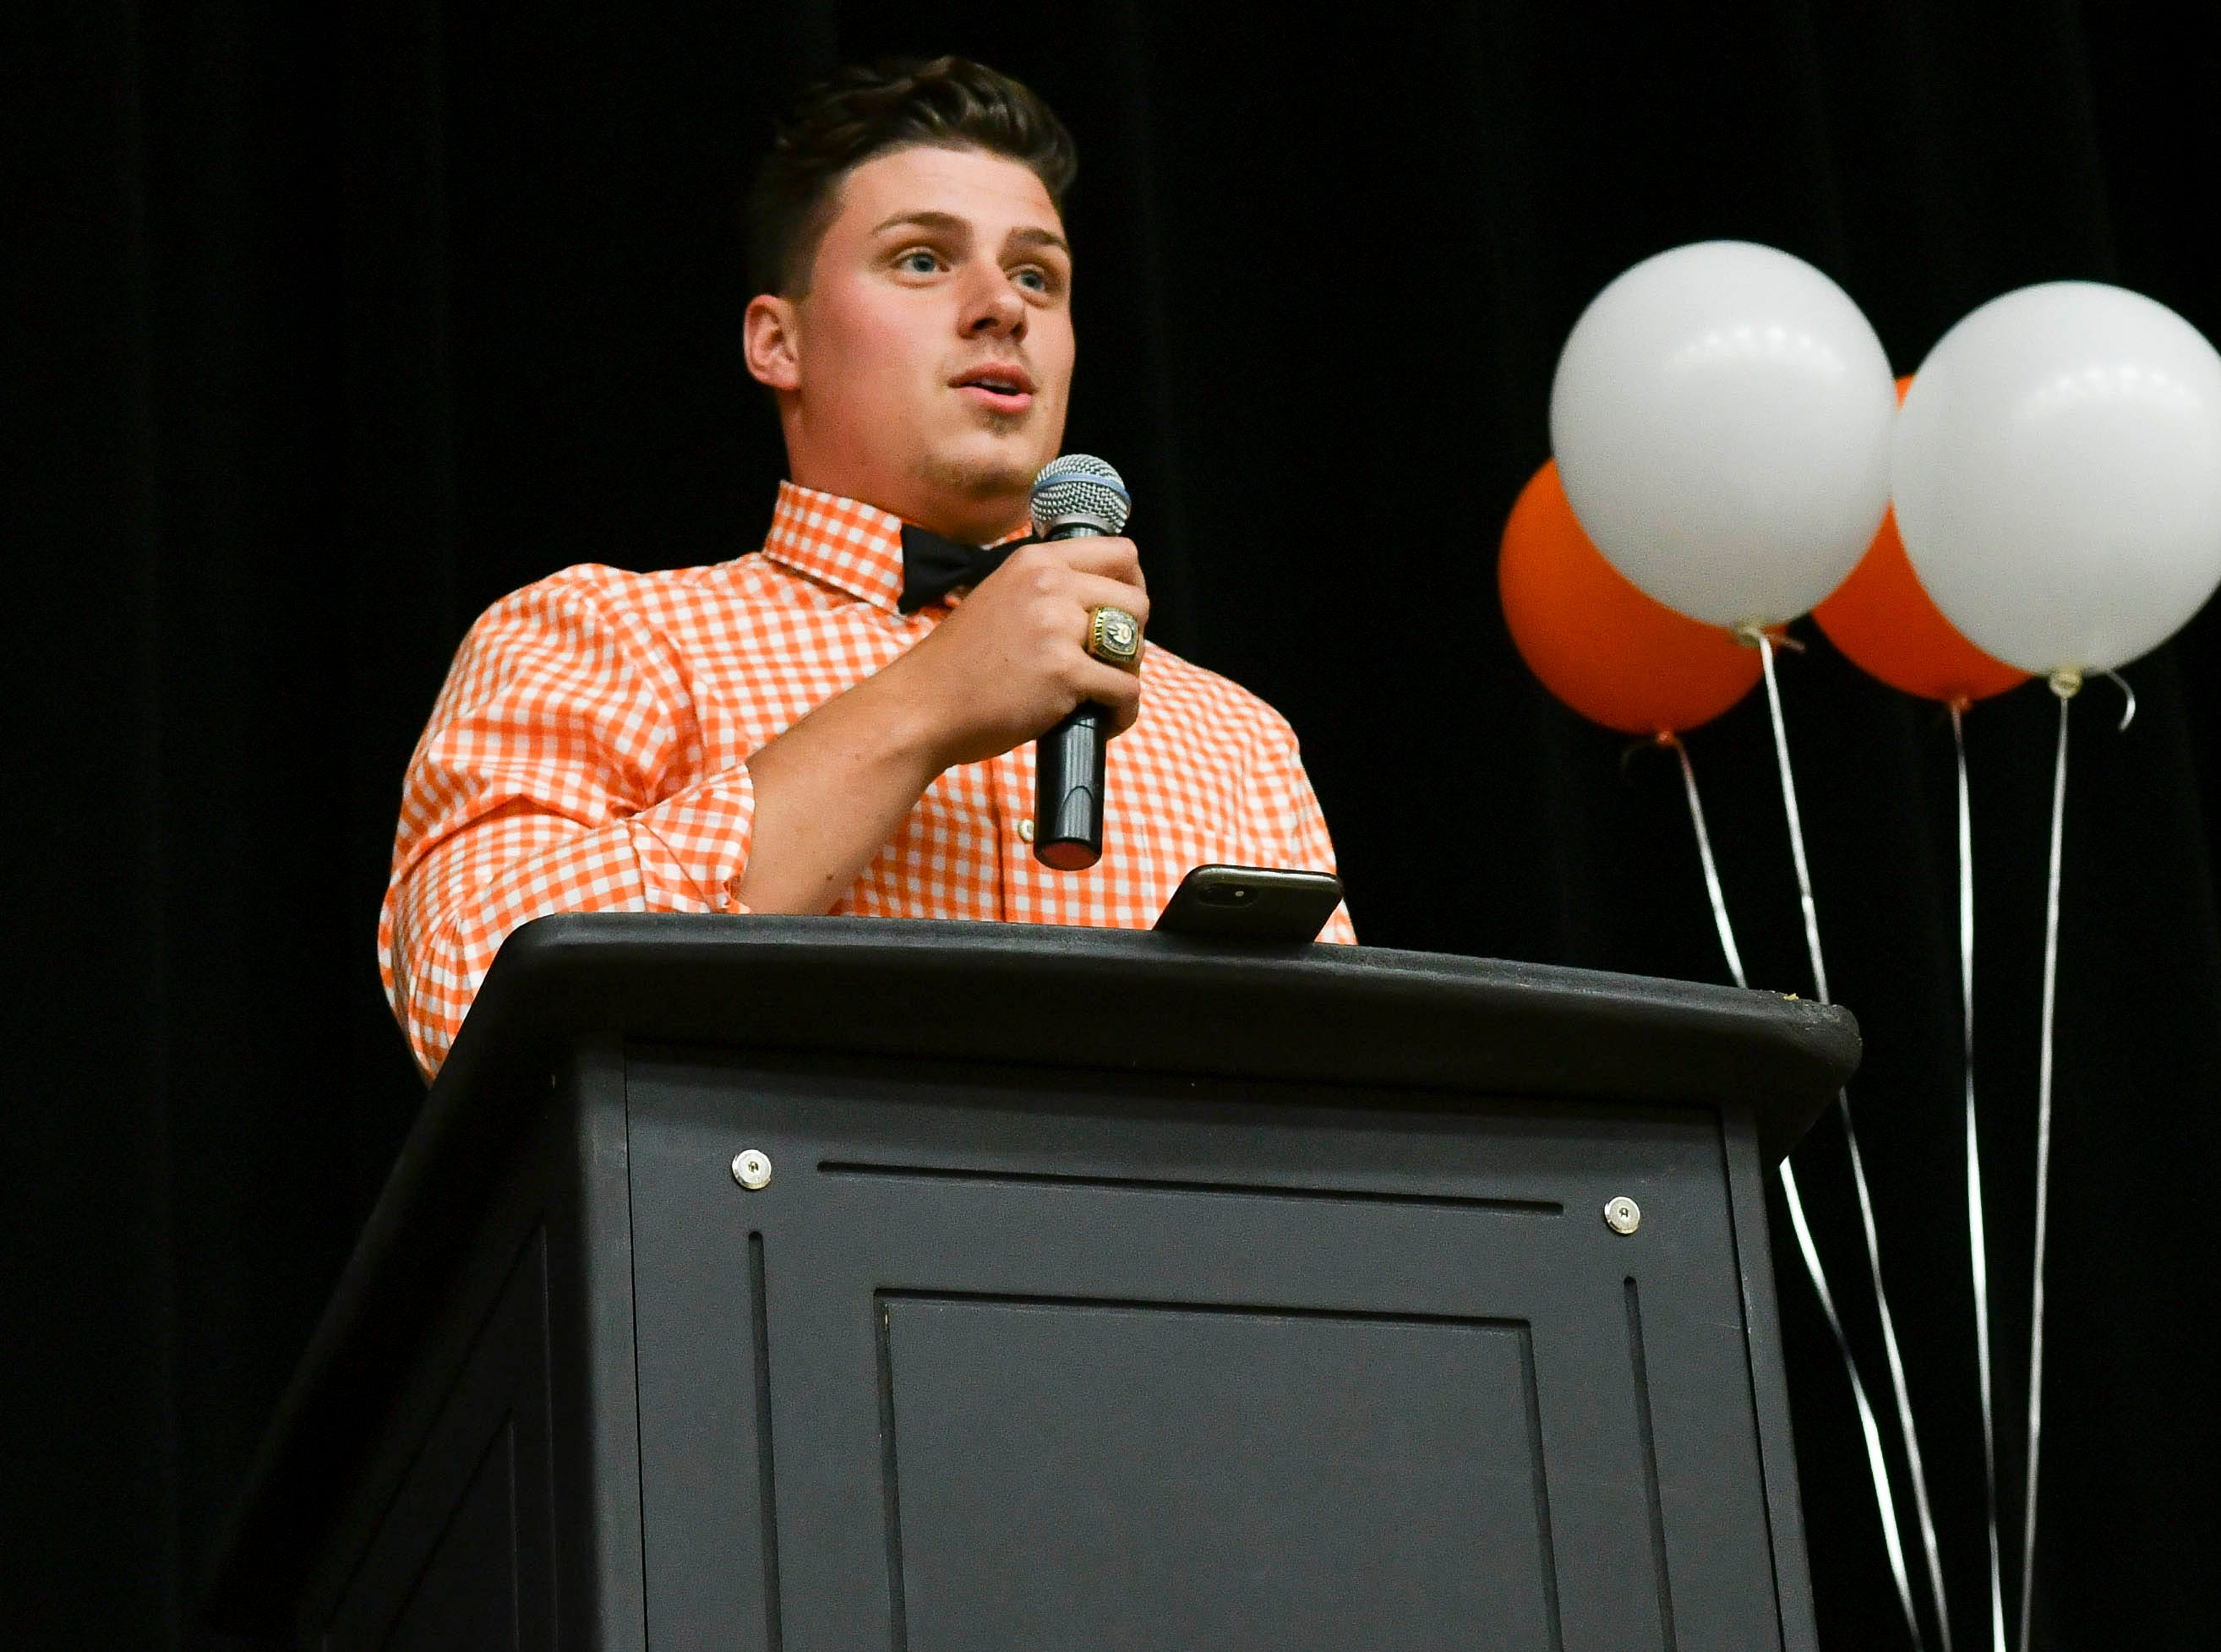 Alex Petruzzello thanks those who helped him succeed during National Signing Day at Cocoa High School